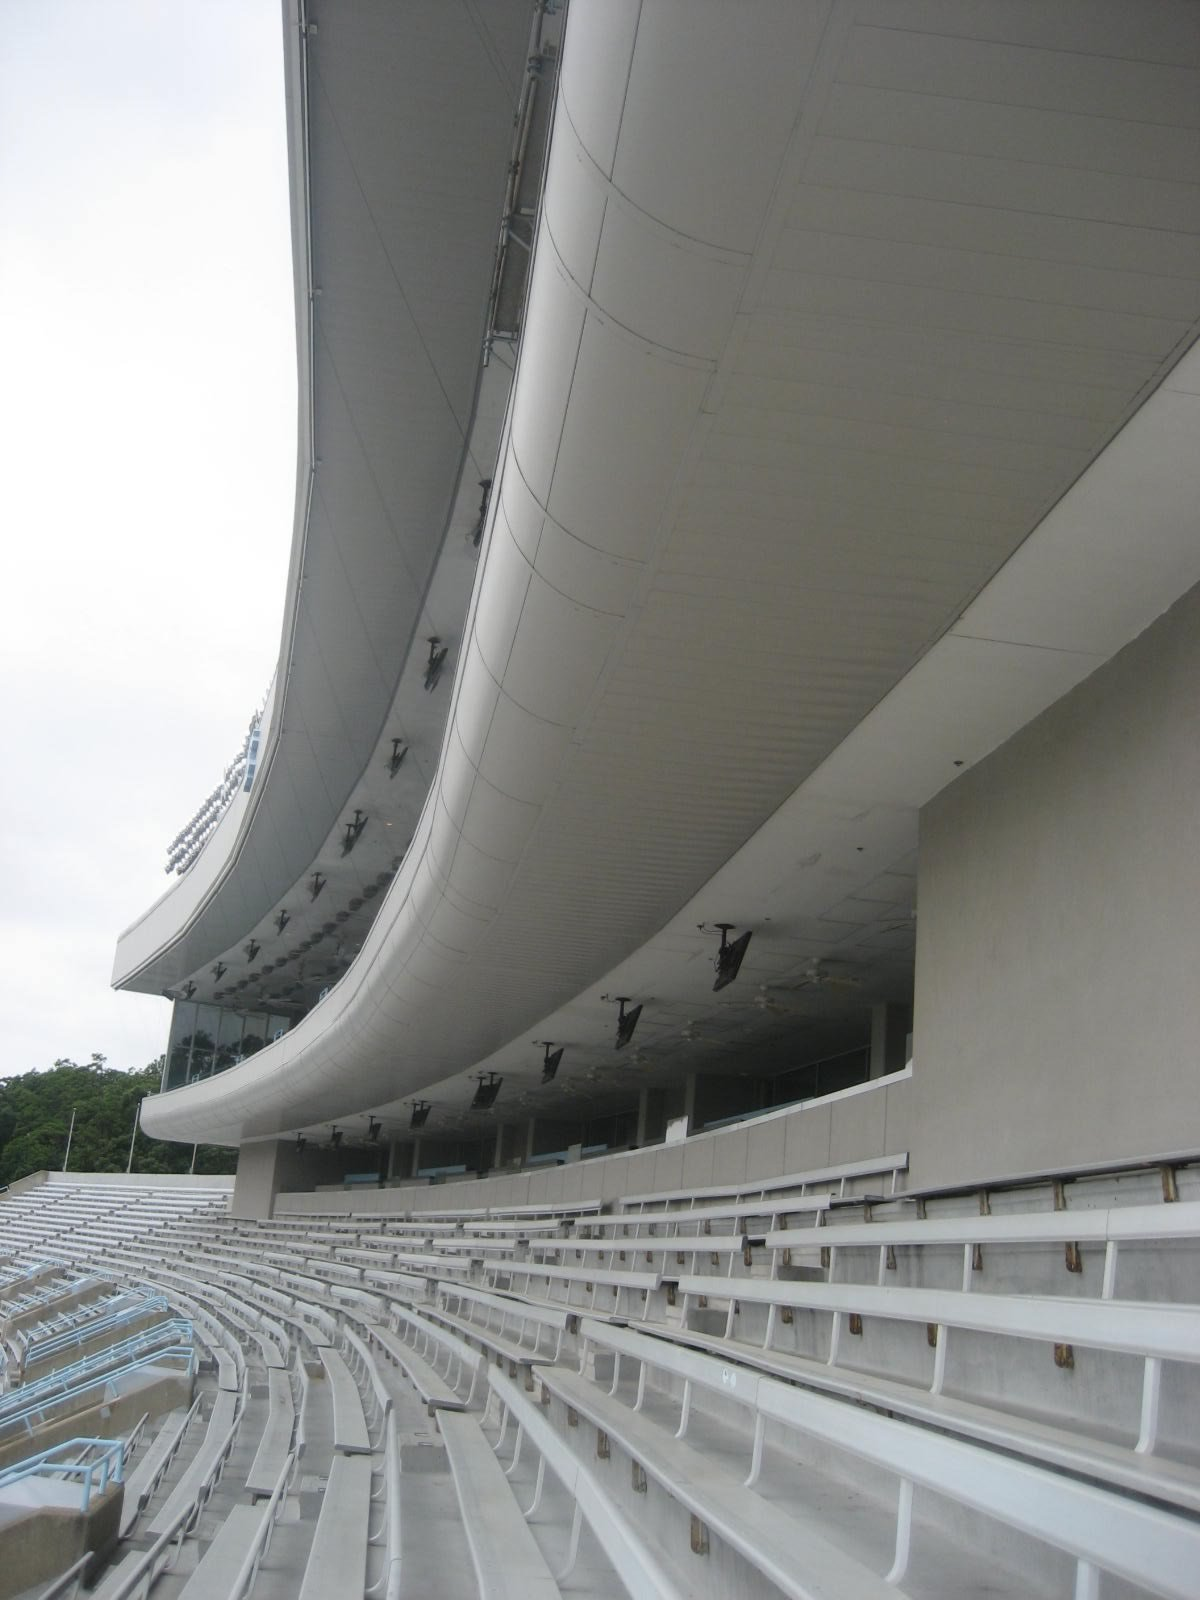 Kenan Memorial Stadium Upper Deck Seats